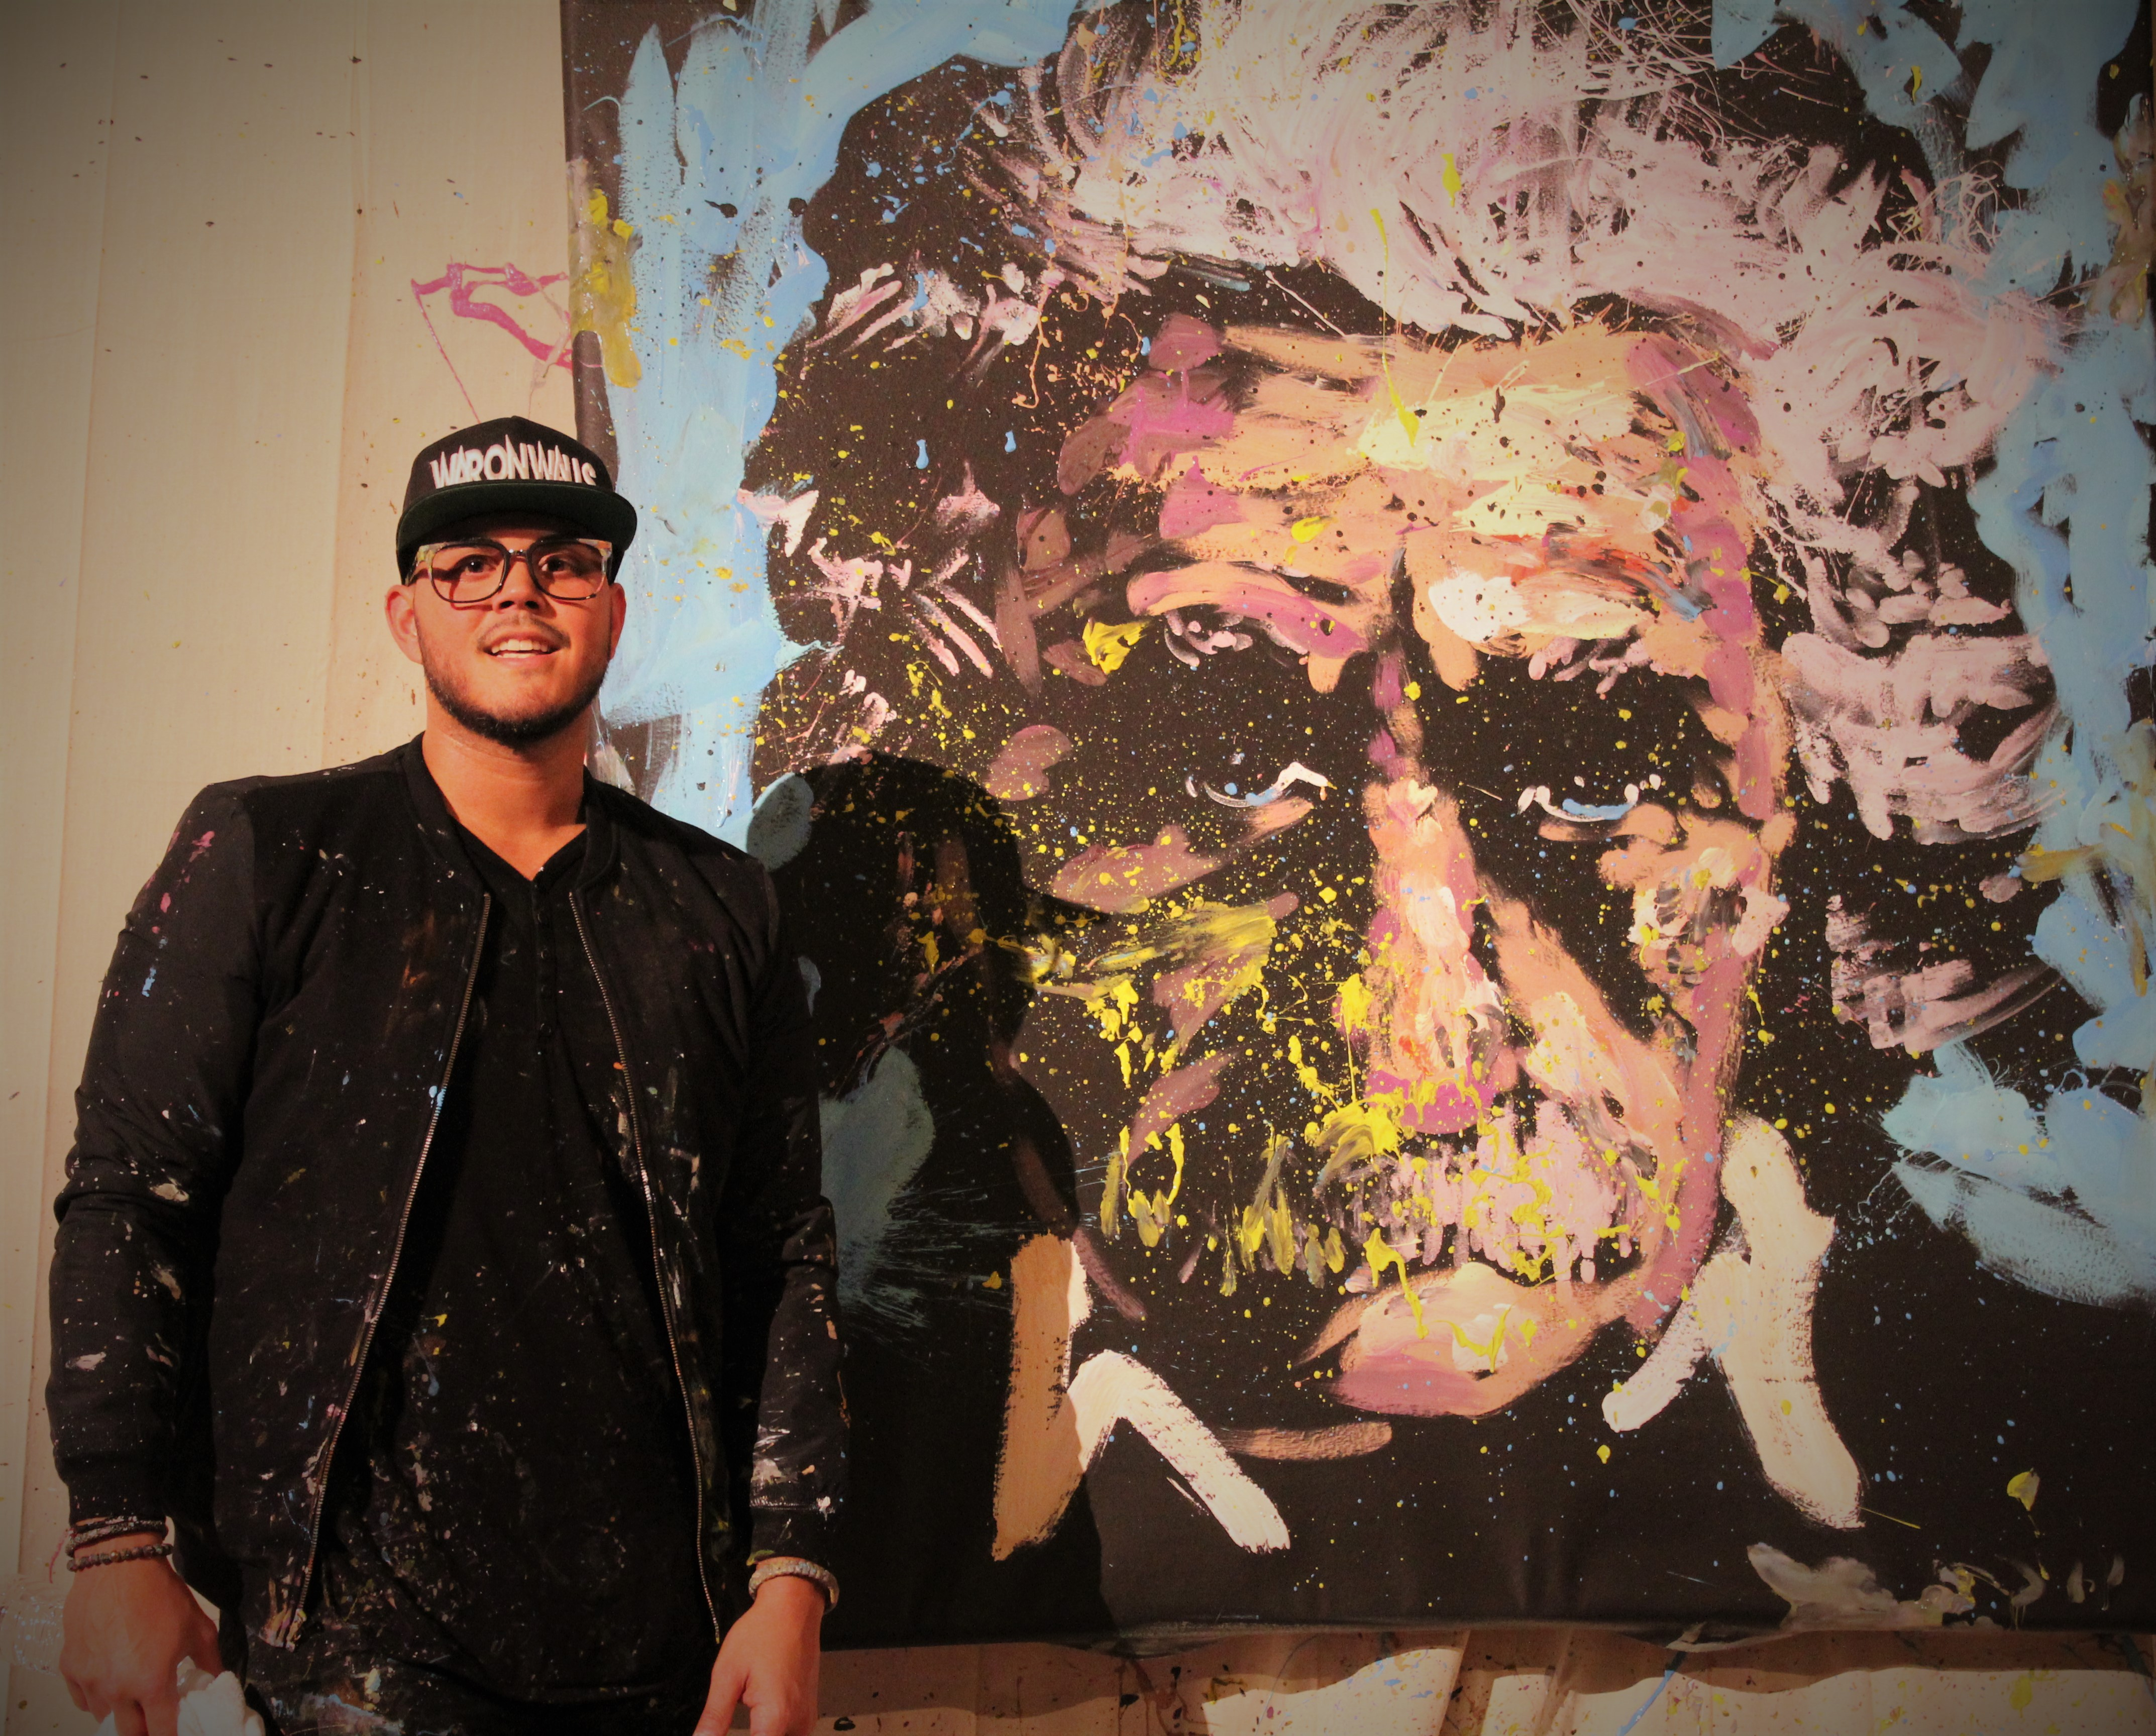 David Garibaldi standing in front of a painting